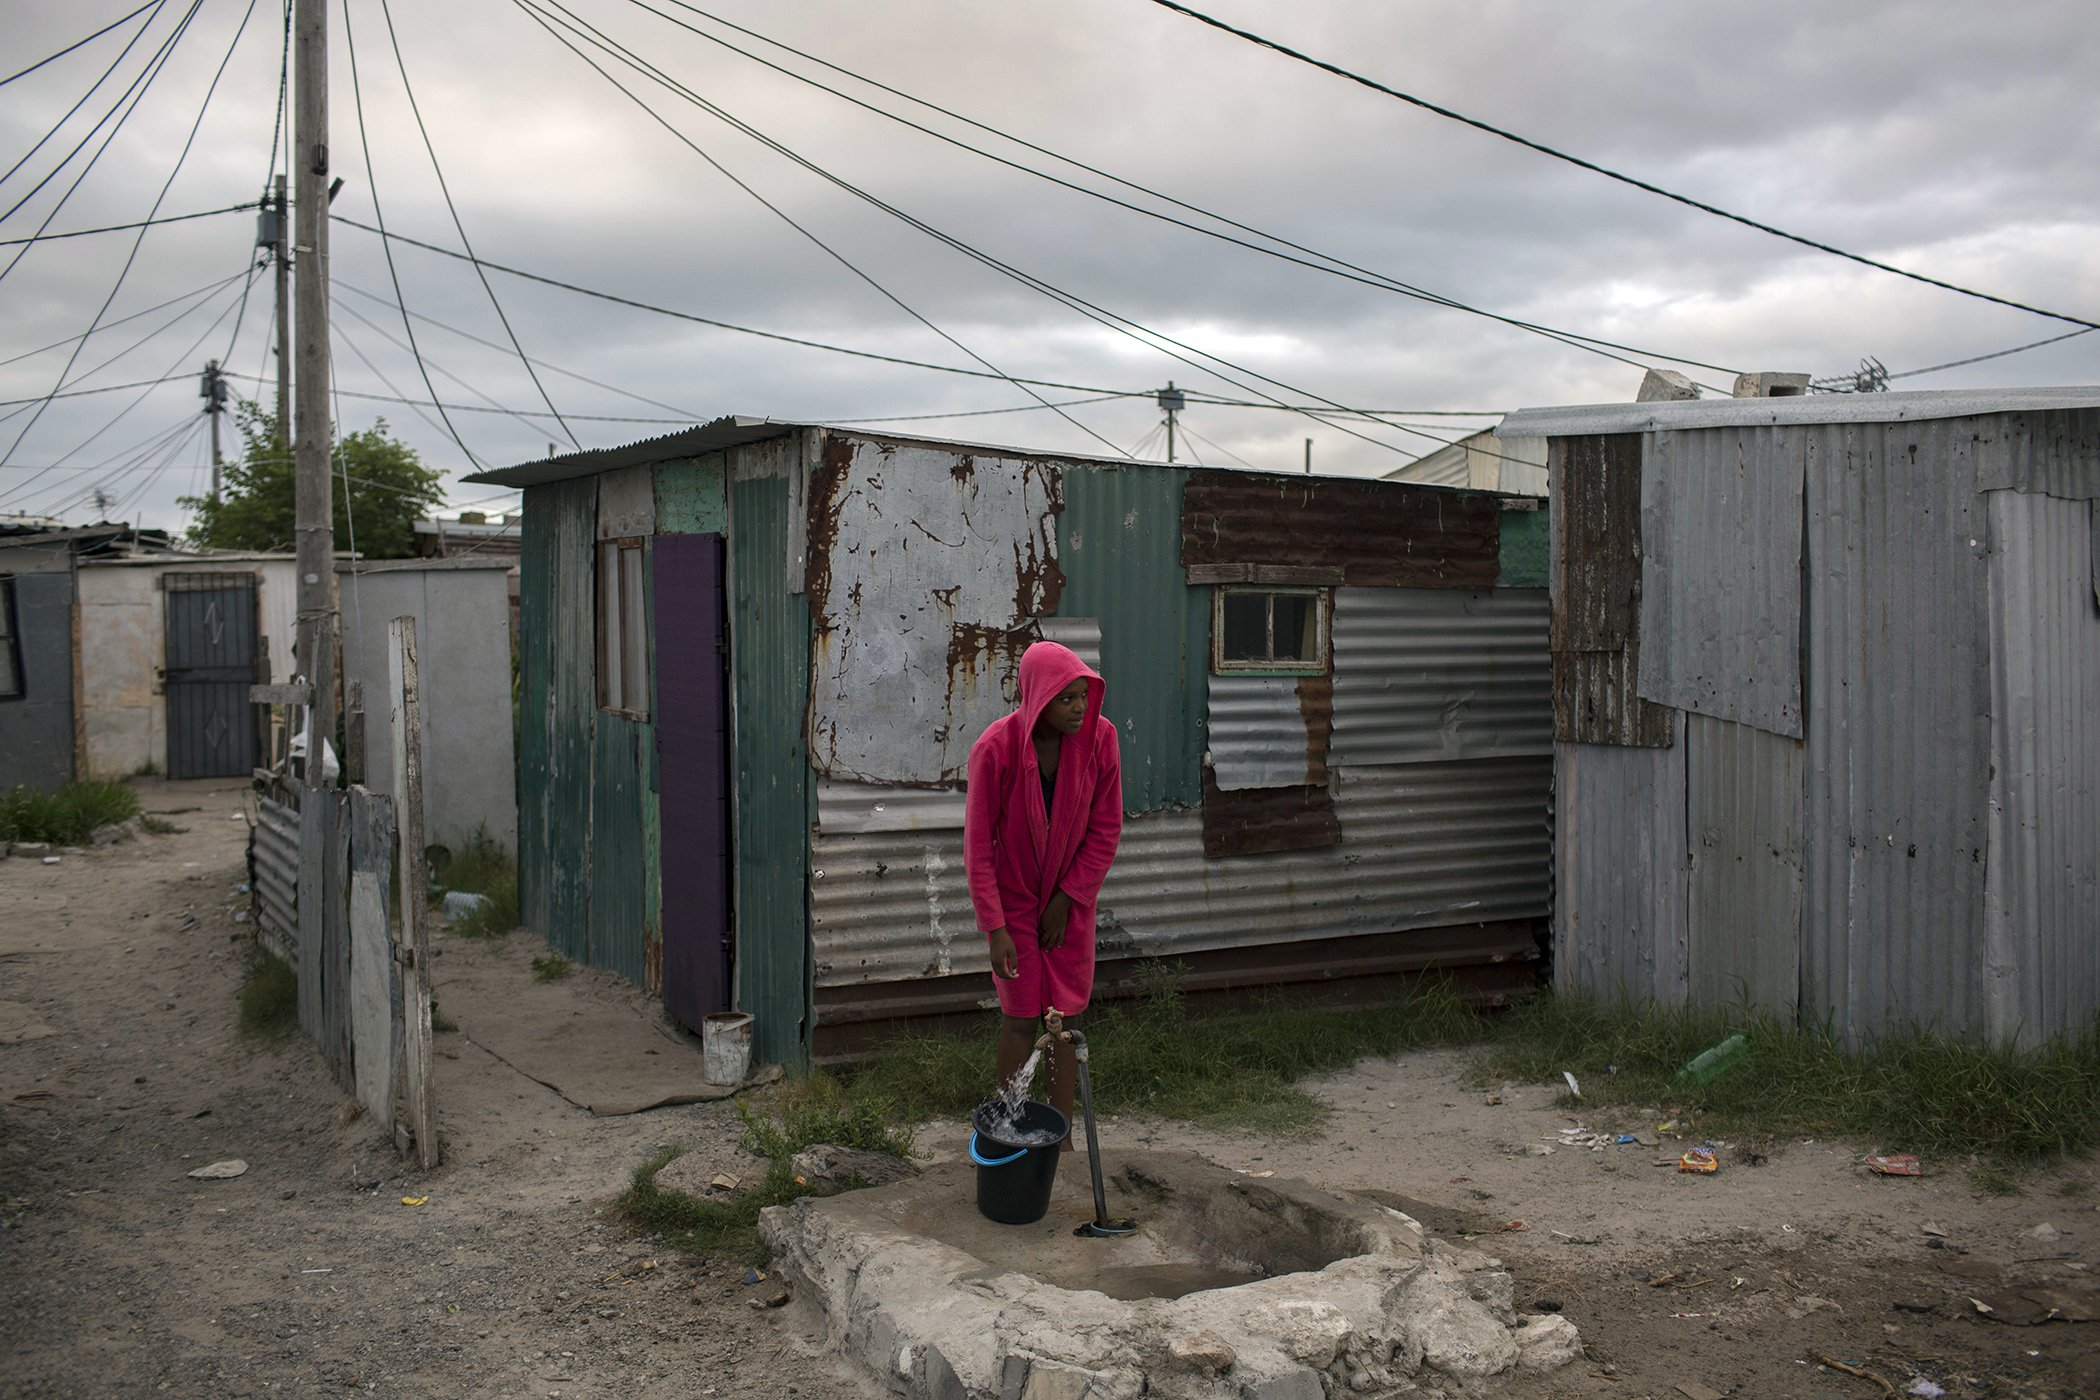 South_Africa_Cape_Town_Drought_003.jpg